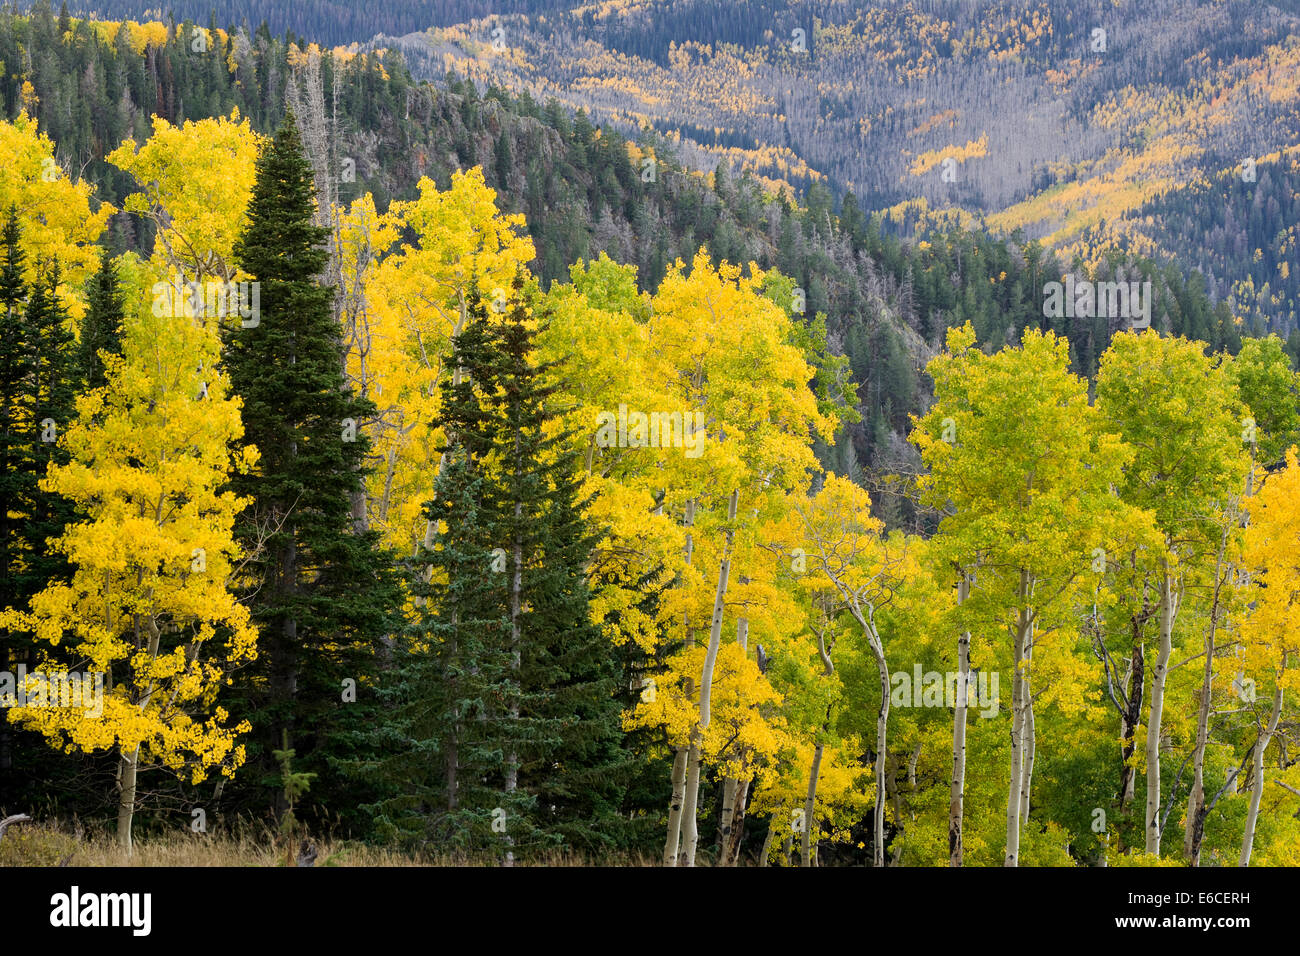 Aspen trees (Populus tremuloides) and conifers in autumn. Sevier Plateau, Fishlake National Forest, Utah, USA. Stock Photo